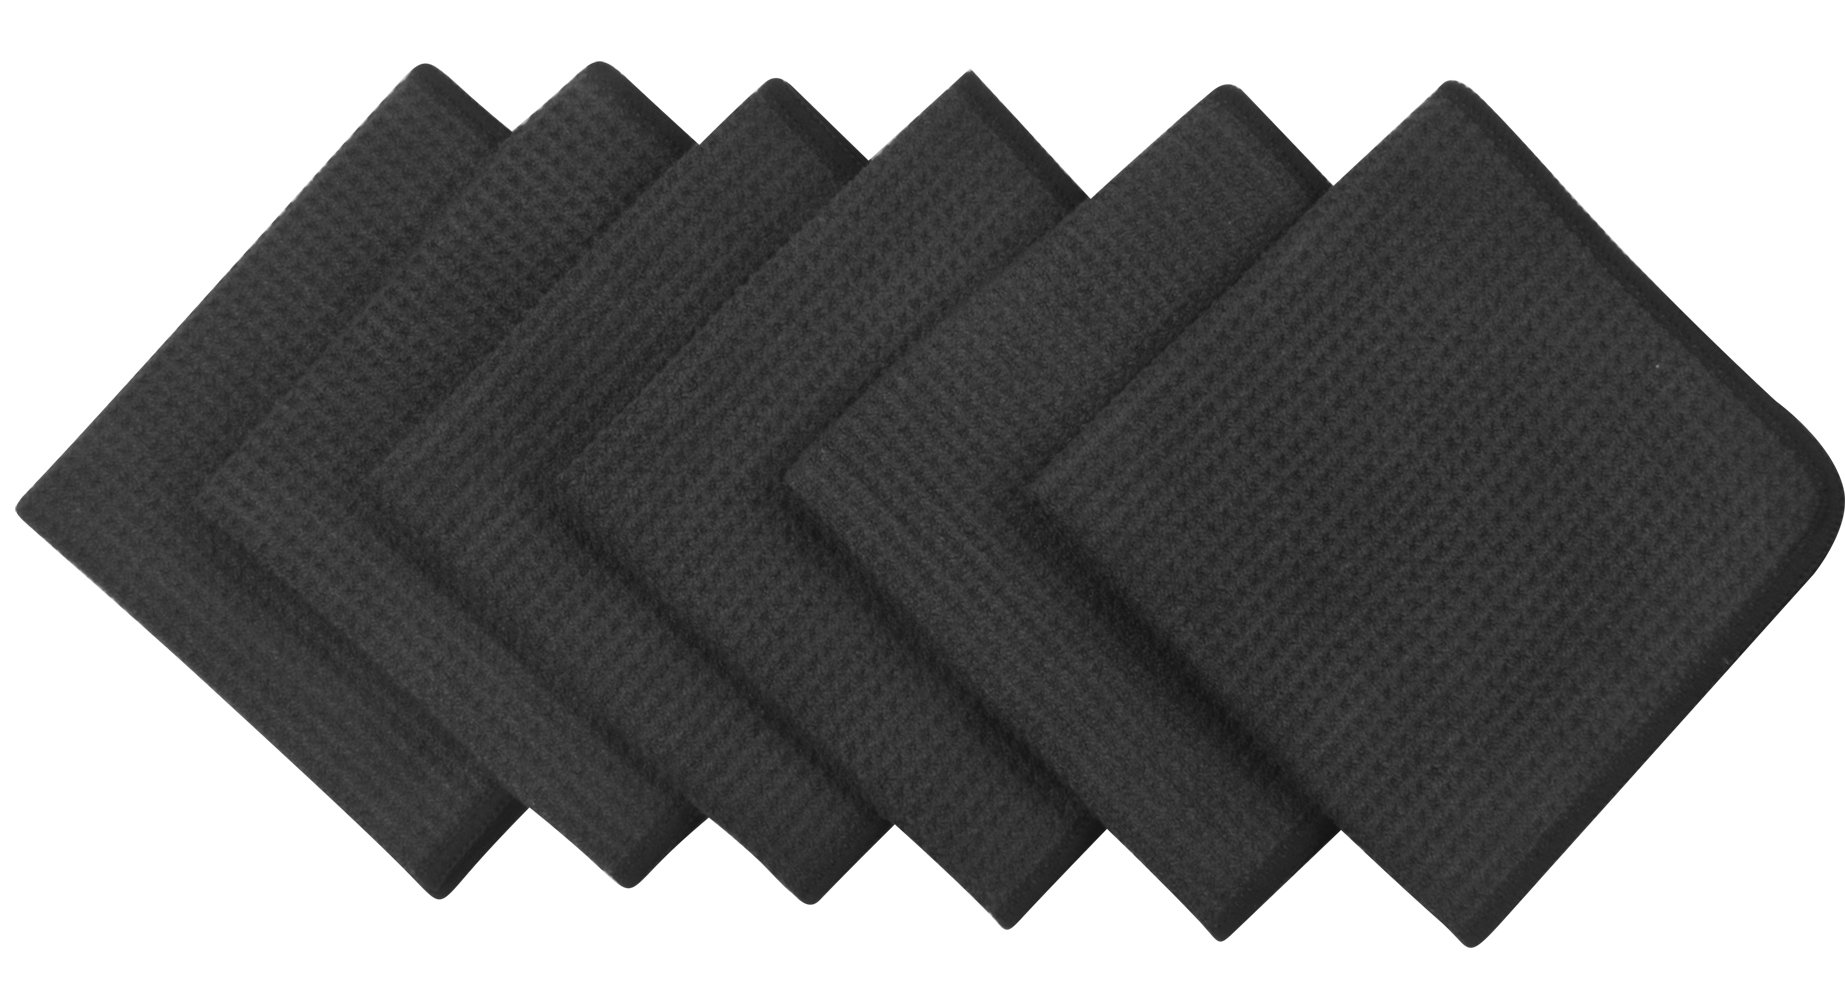 Sinland Microfiber Waffle Weave Dishcloths Cleaning Cloths 6 Pack 13inch X 13inch Black